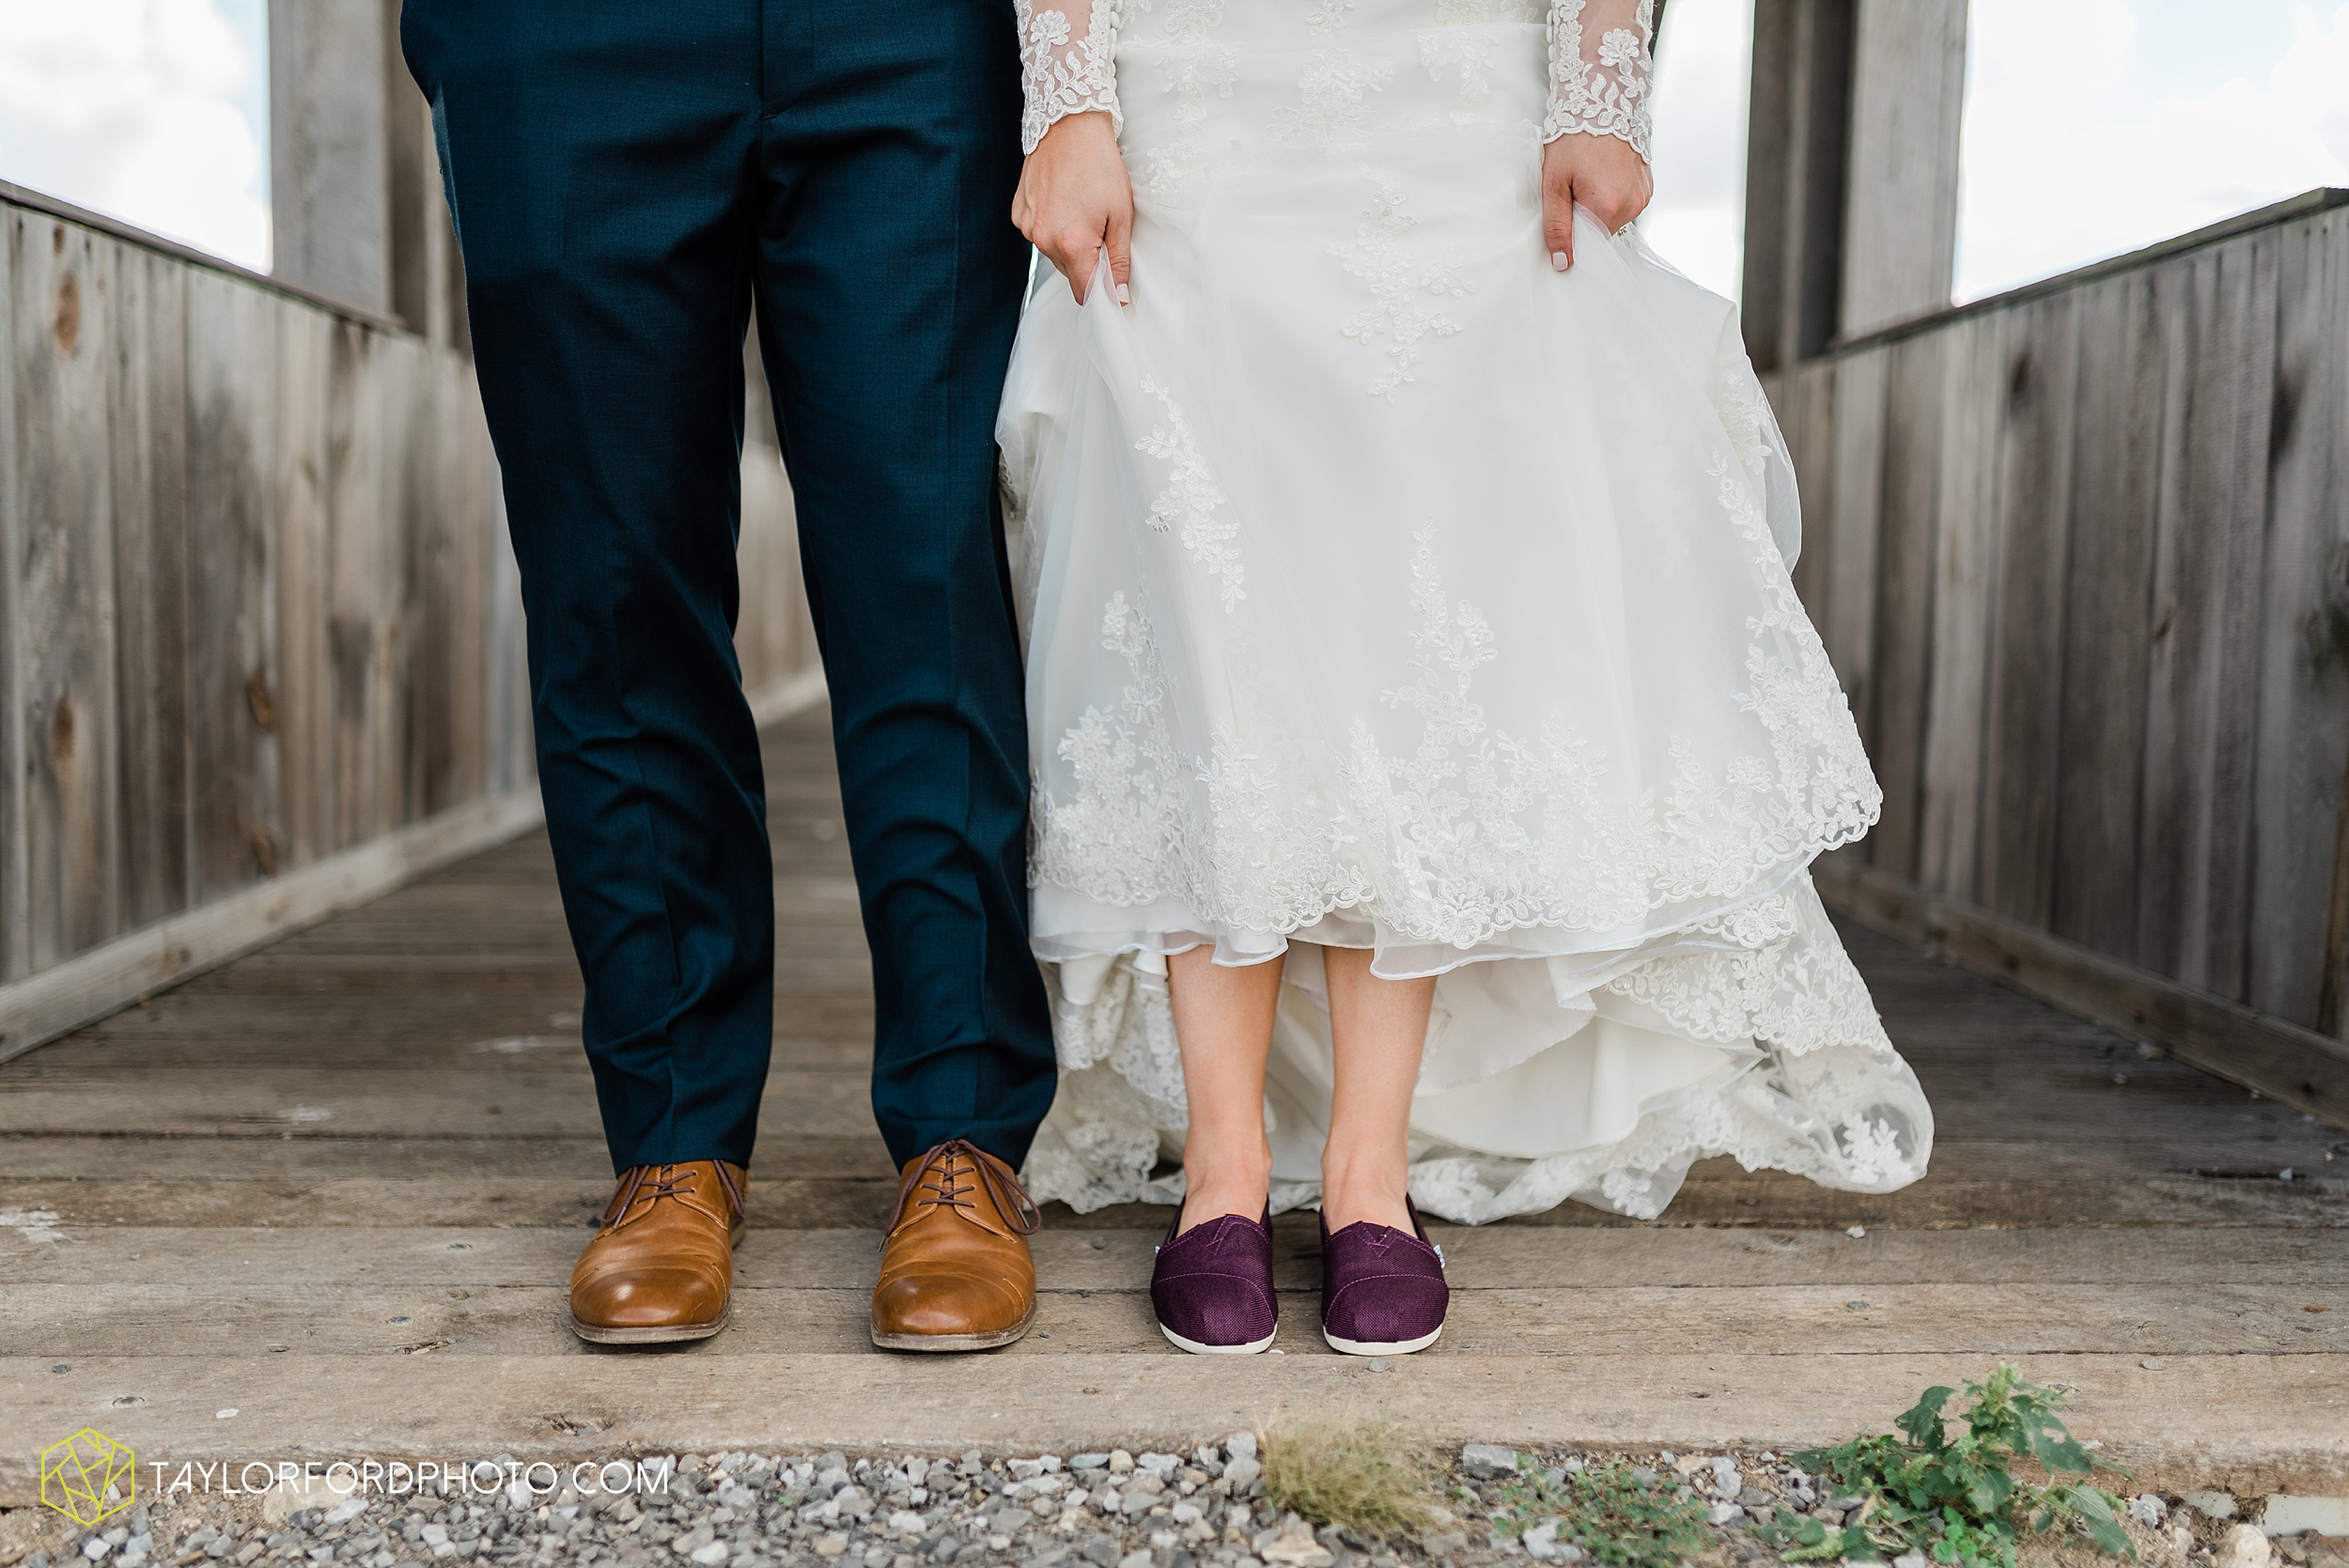 gayle-rayman-mike-steele-ottoville-ohio-wedding-immaculate-conception-parish-center-wedding-sycamore-lake-winery-wannamachers-photographer-taylor-ford-photography_0410.jpg